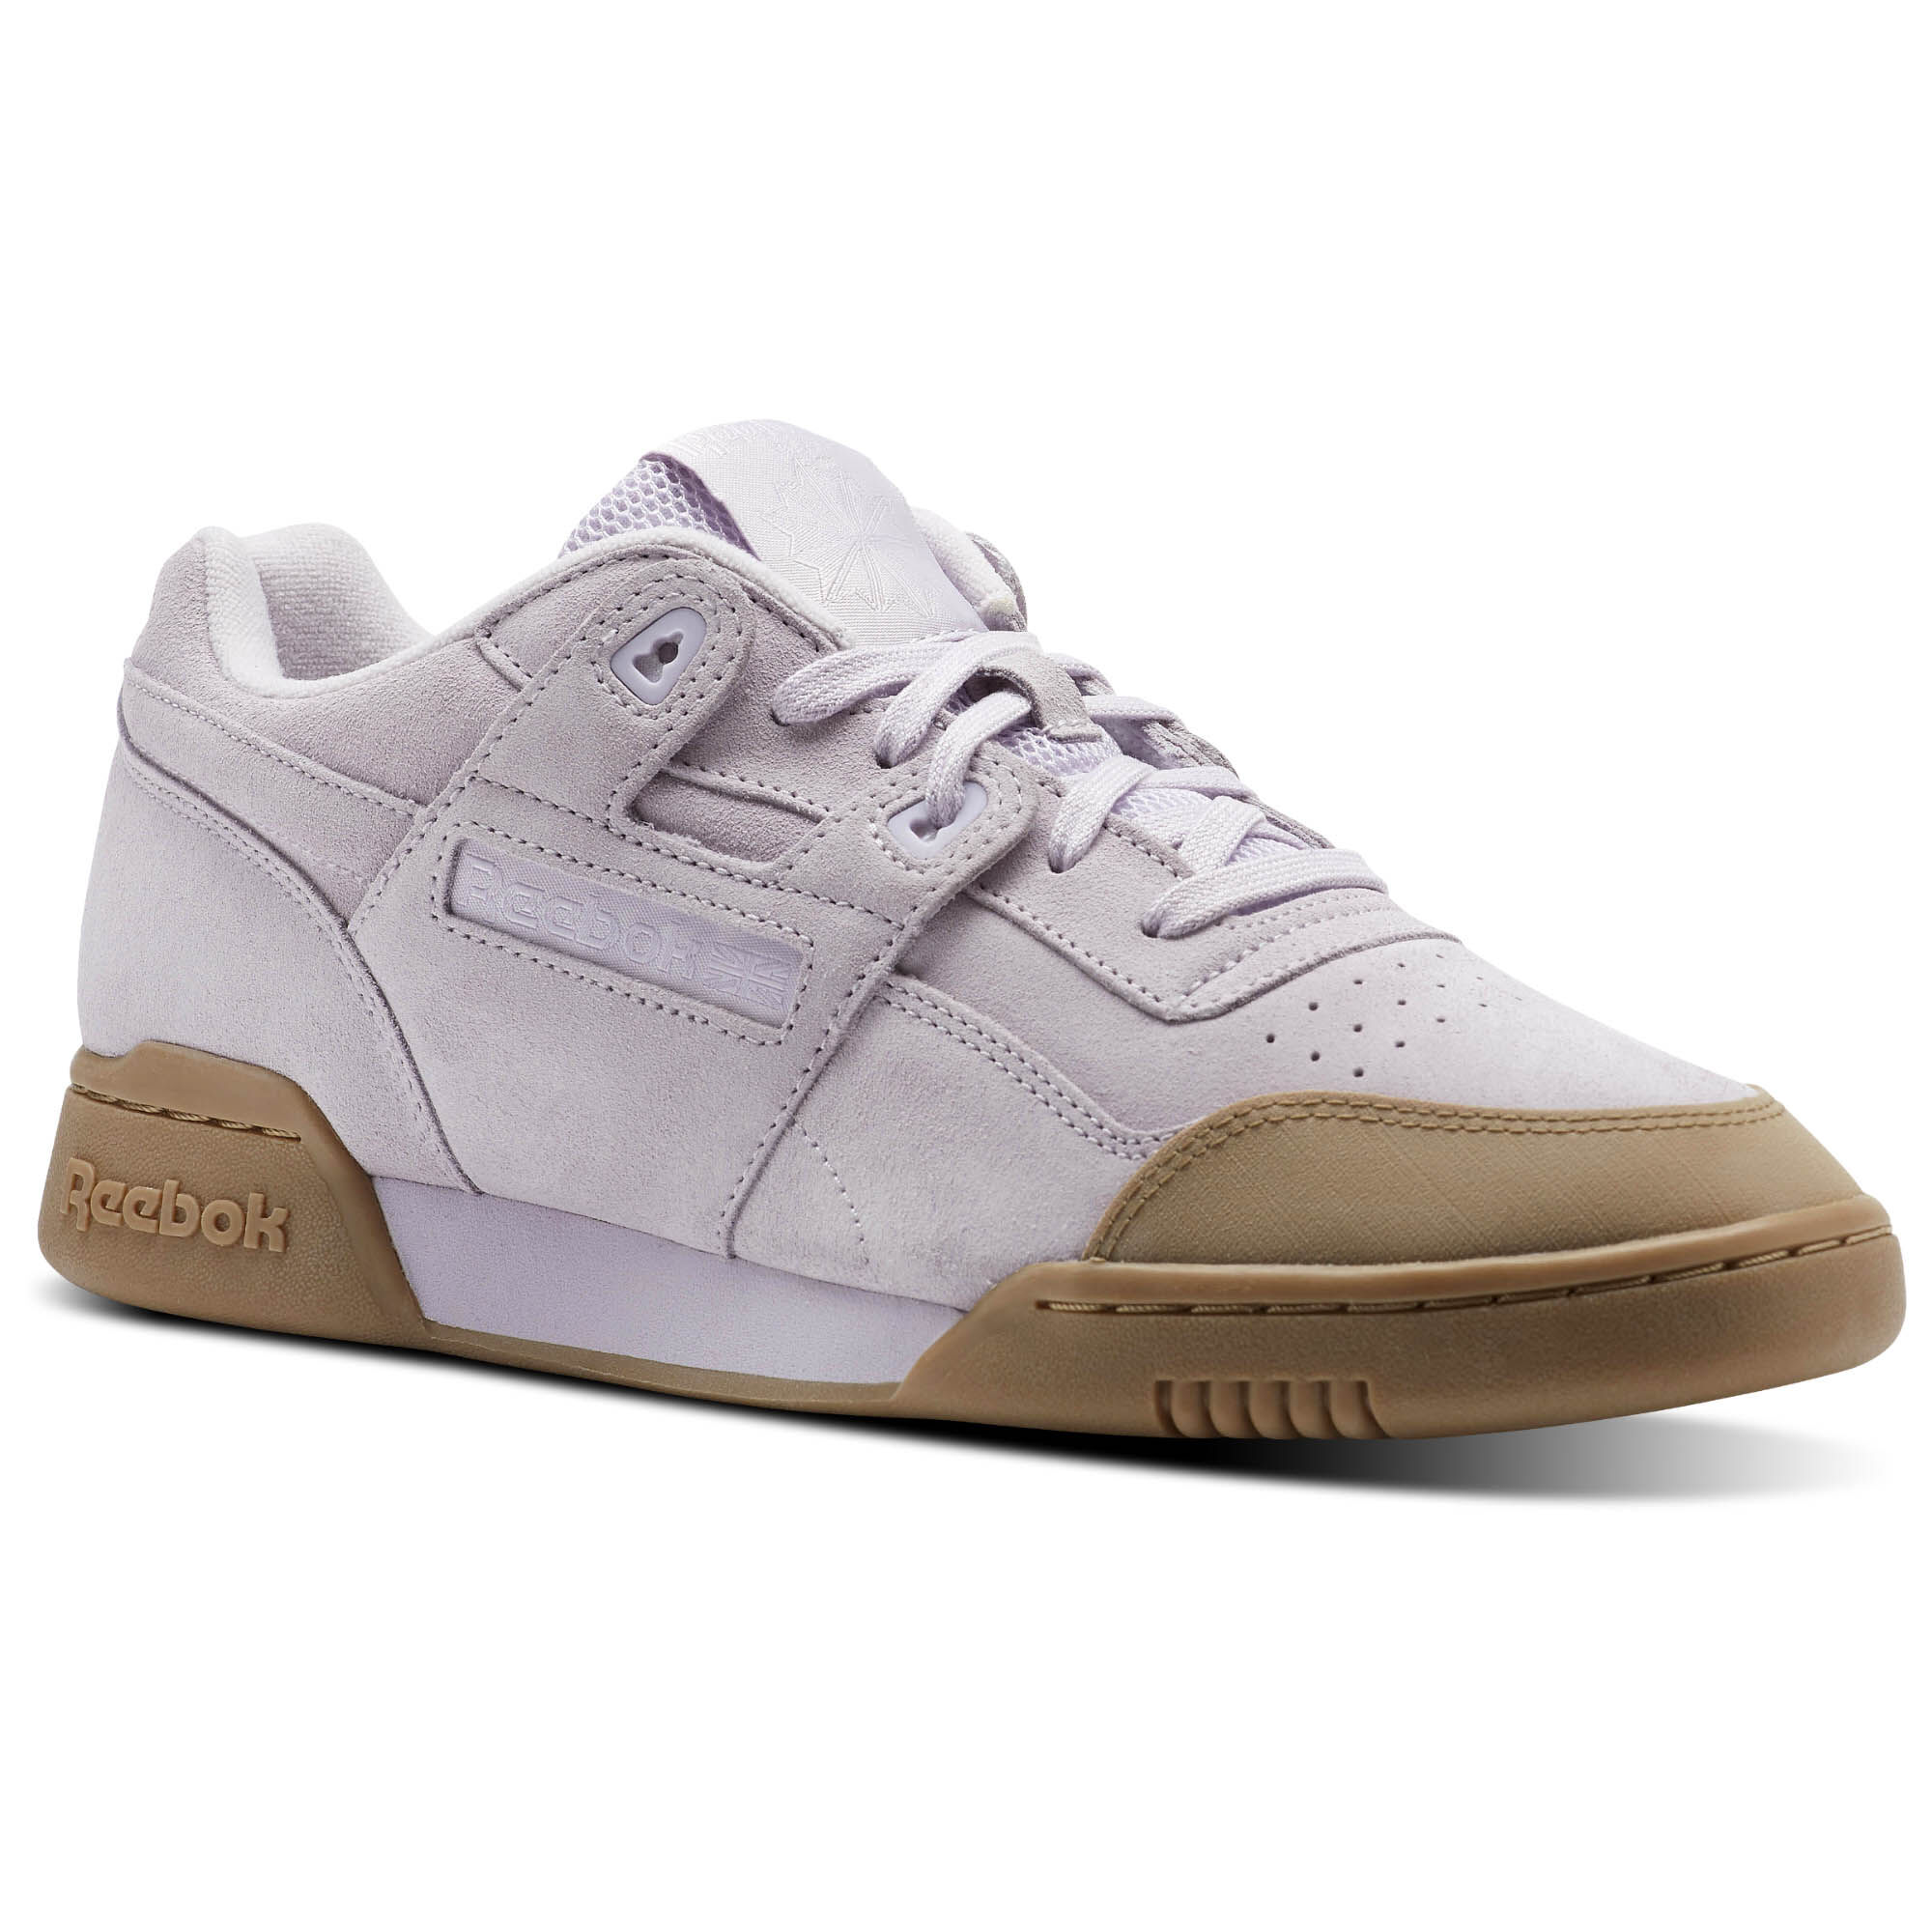 Reebok Workout Plus SKK Trainers In Purple CM9665 discount online clearance under $60 get to buy cheap online cheap shop offer 8qnSbAJt